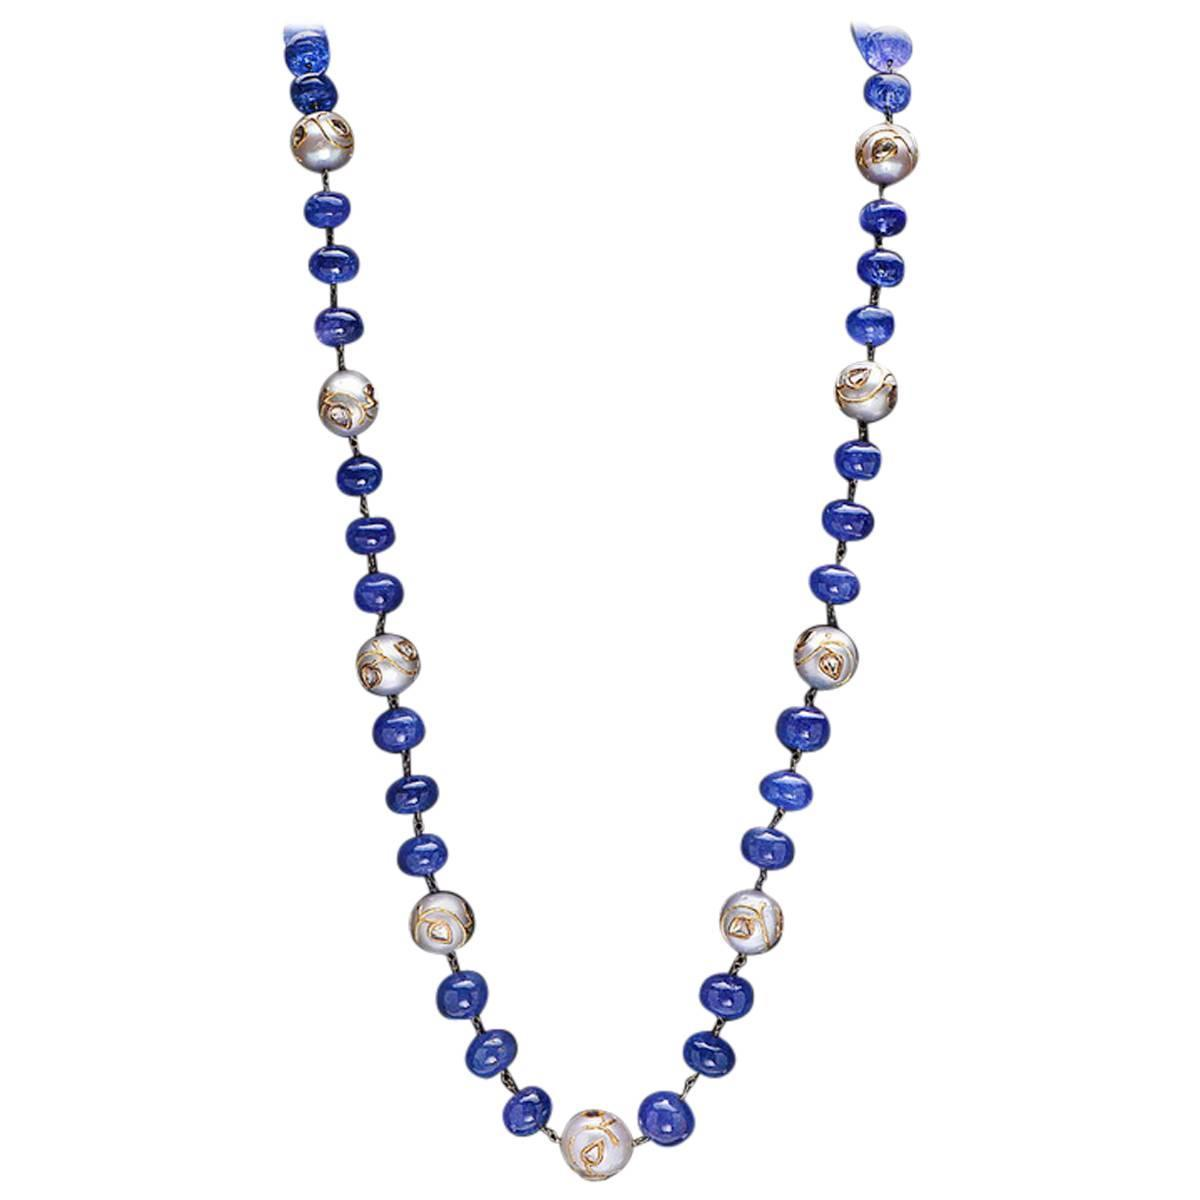 Pearl Tanzanite: Gorgeous Tanzanite Pearl Necklace For Sale At 1stdibs